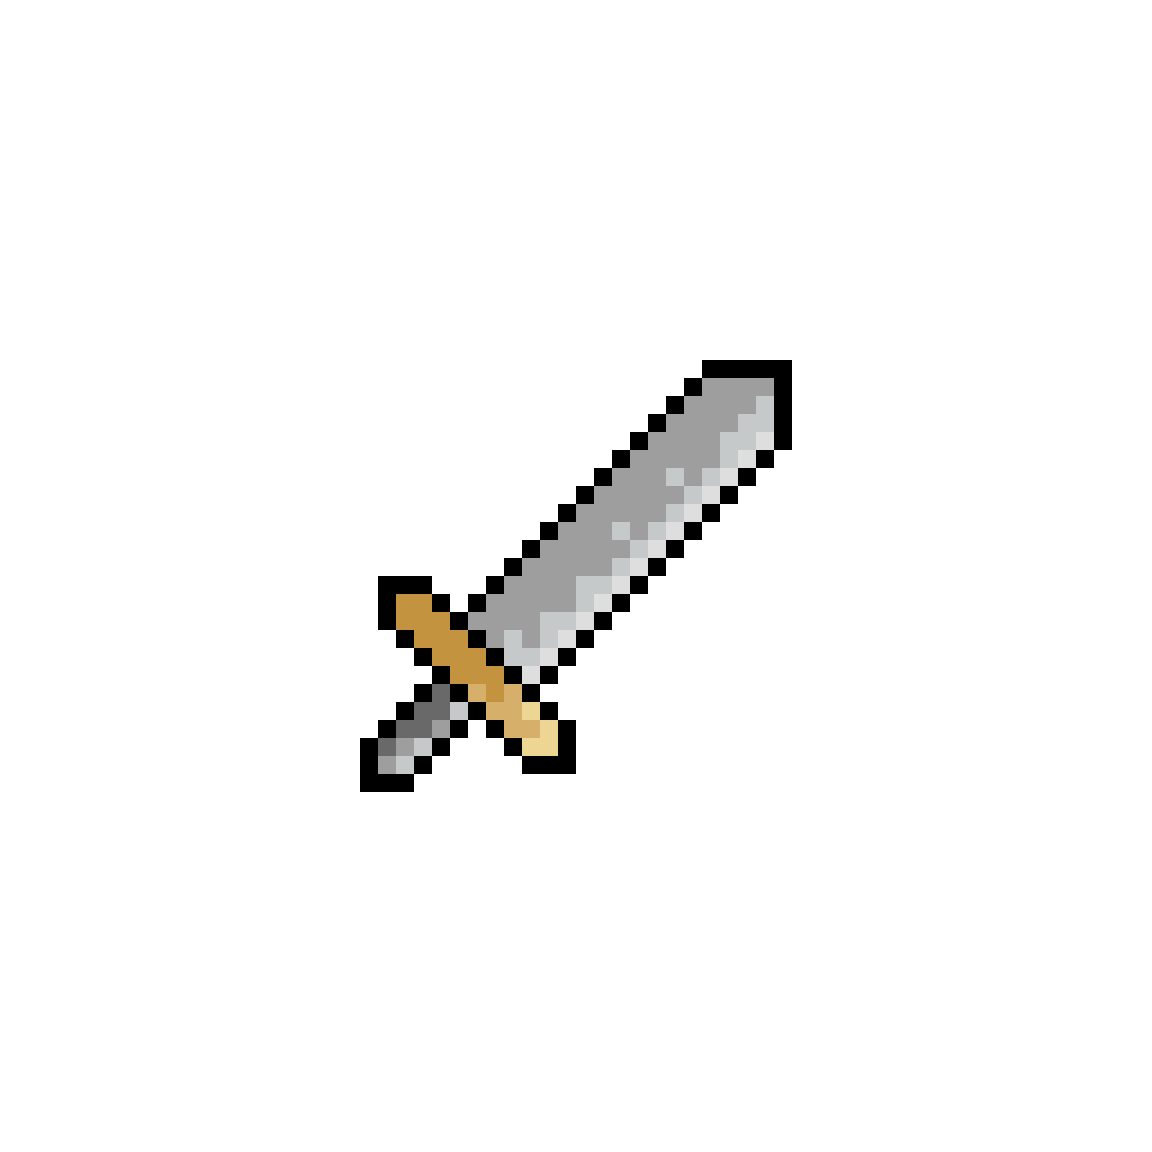 Simple Pixel Sword By LazerGaming